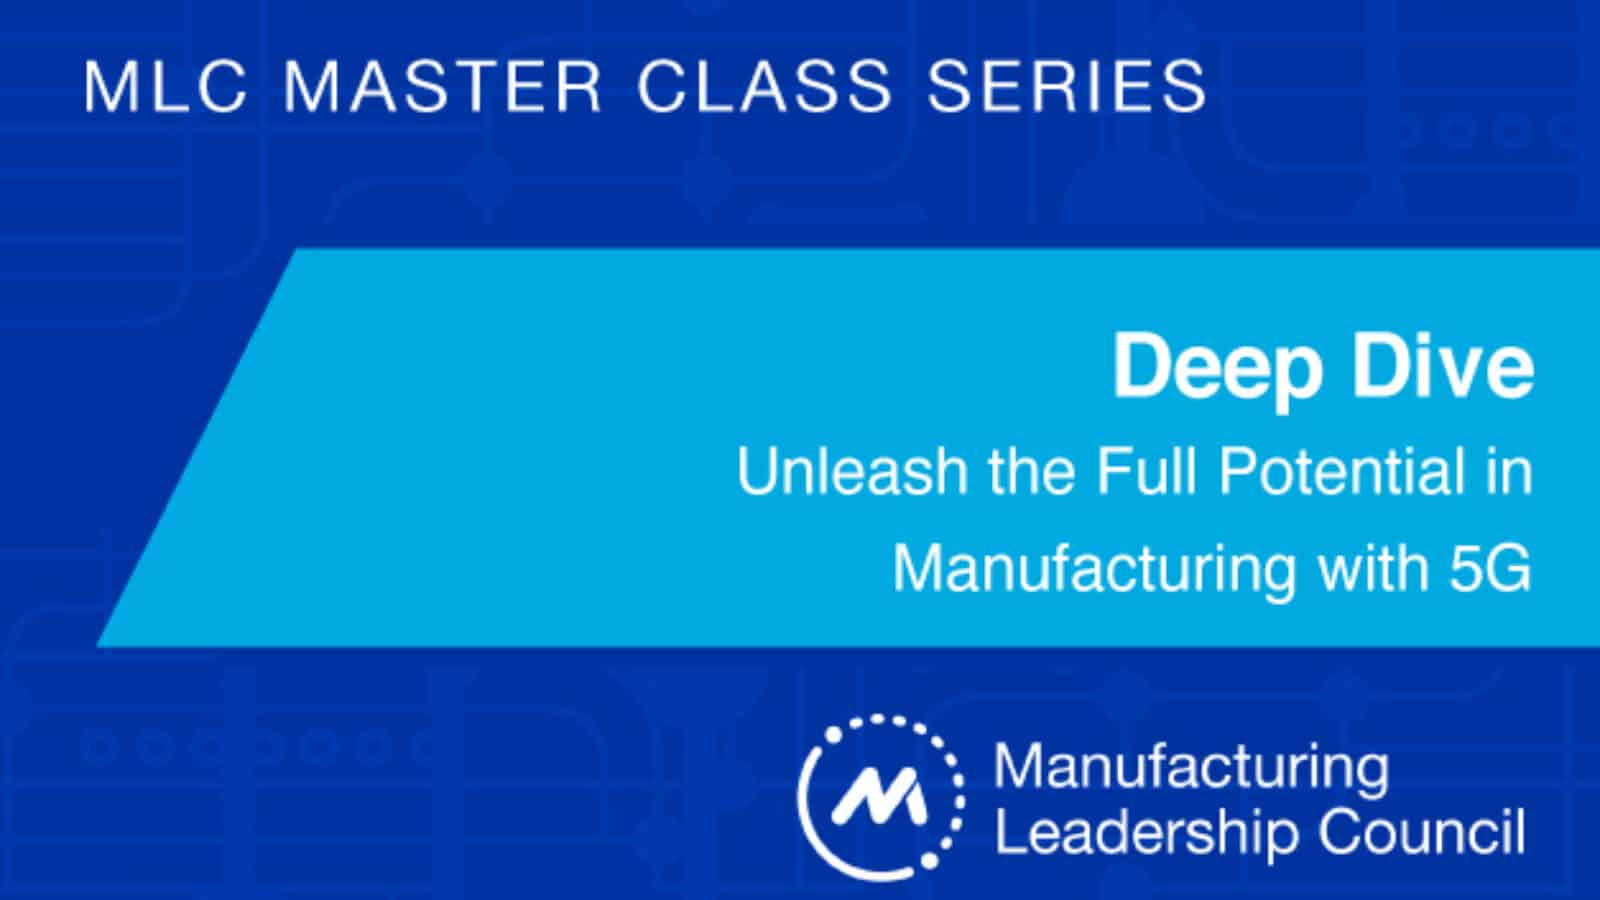 MLC Master Class Deep Dive: Unleash the Full Potential in Manufacturing with 5G